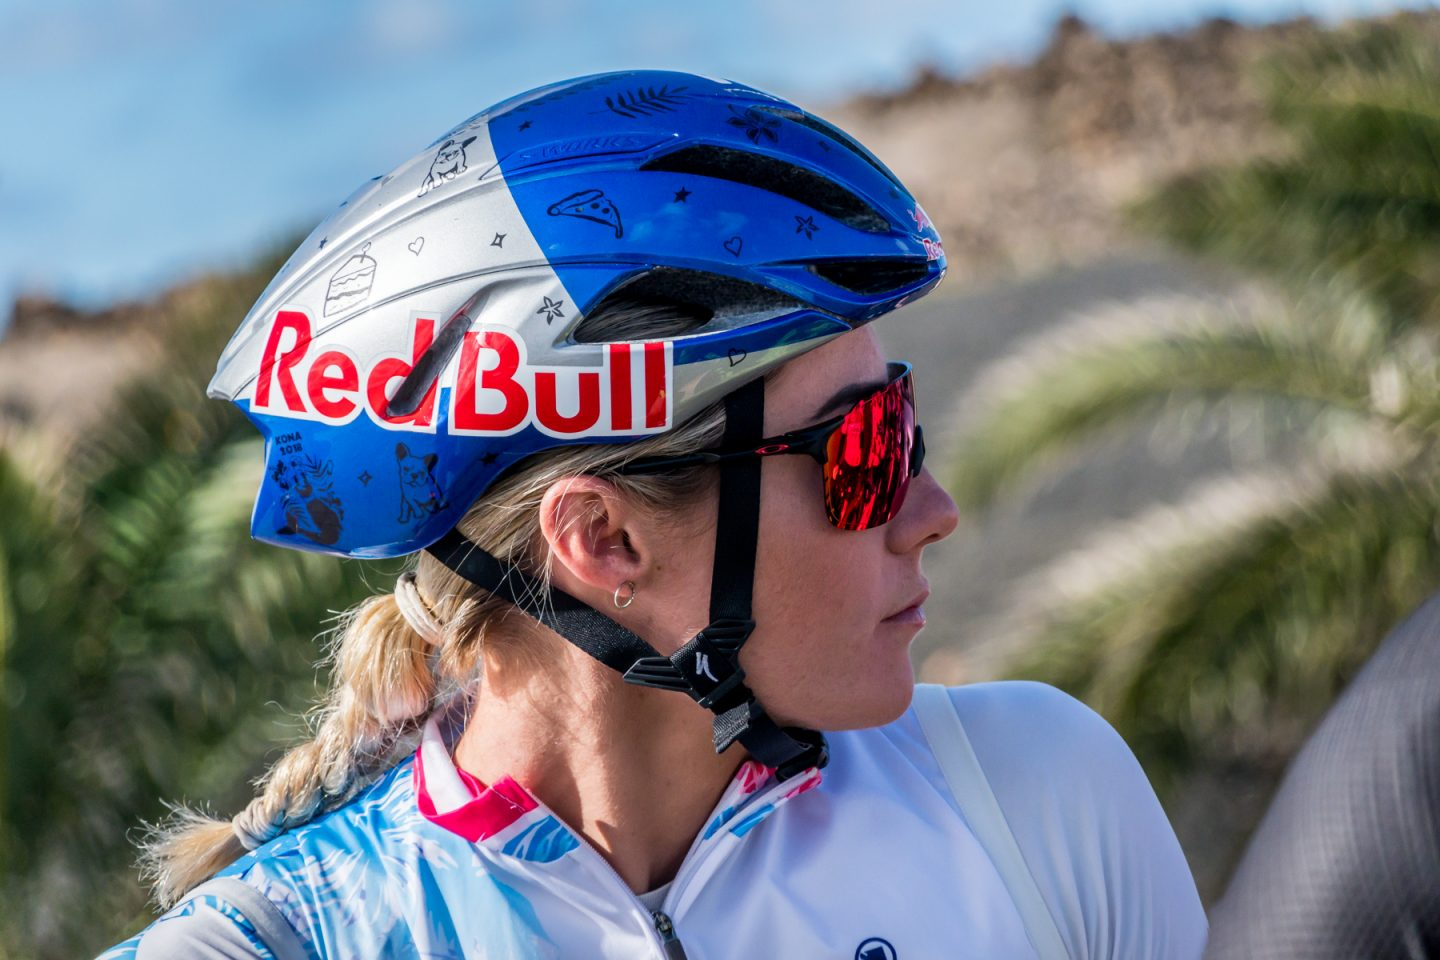 Lucy Charles - Red Bull Athlete